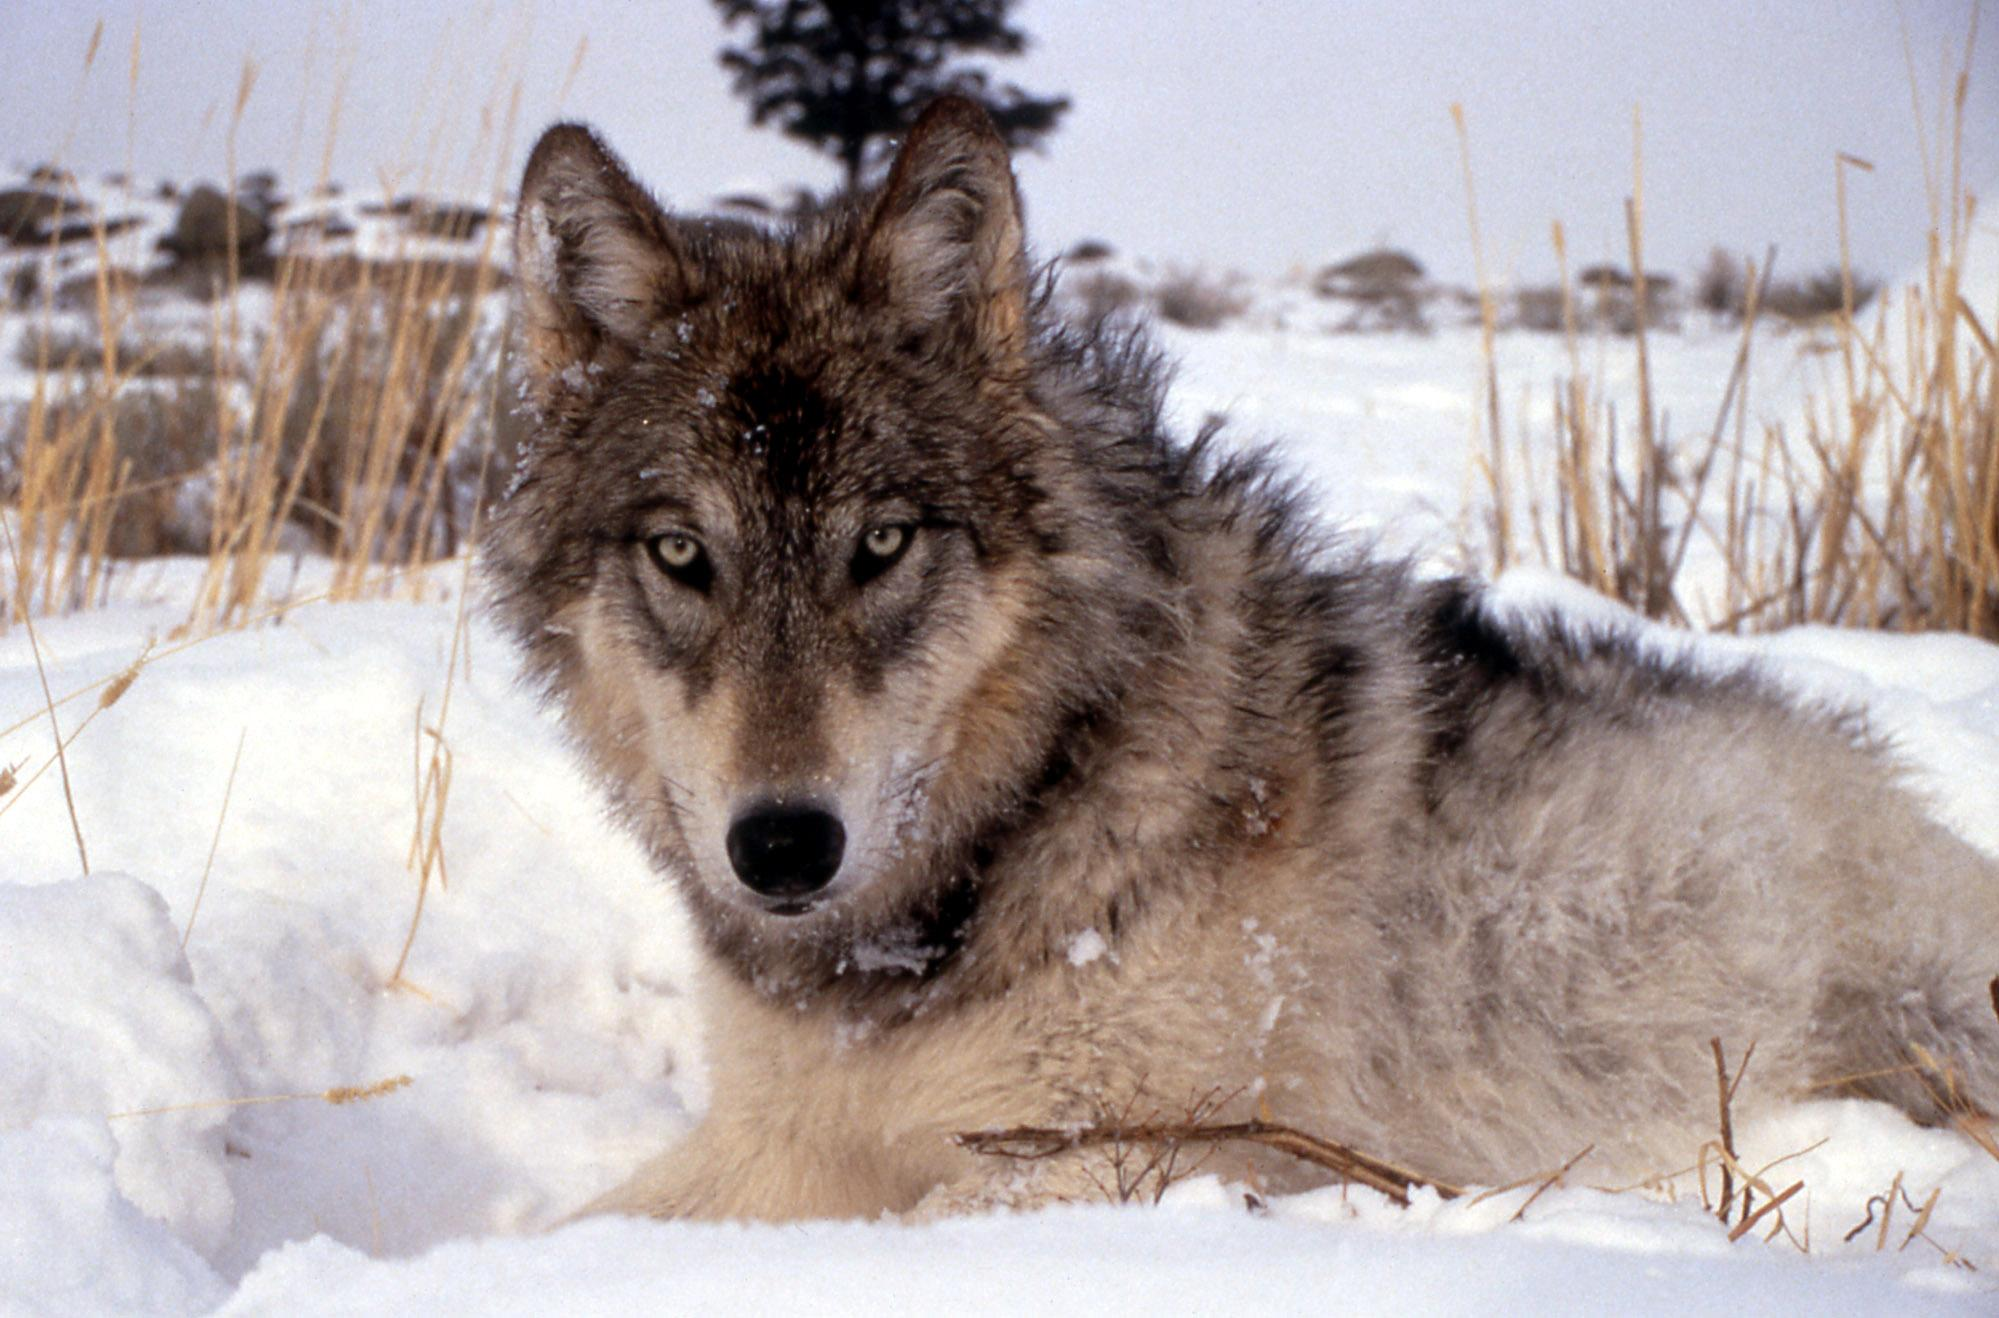 File This Image Provided By The National Park Service Shows A Gray Wolf In